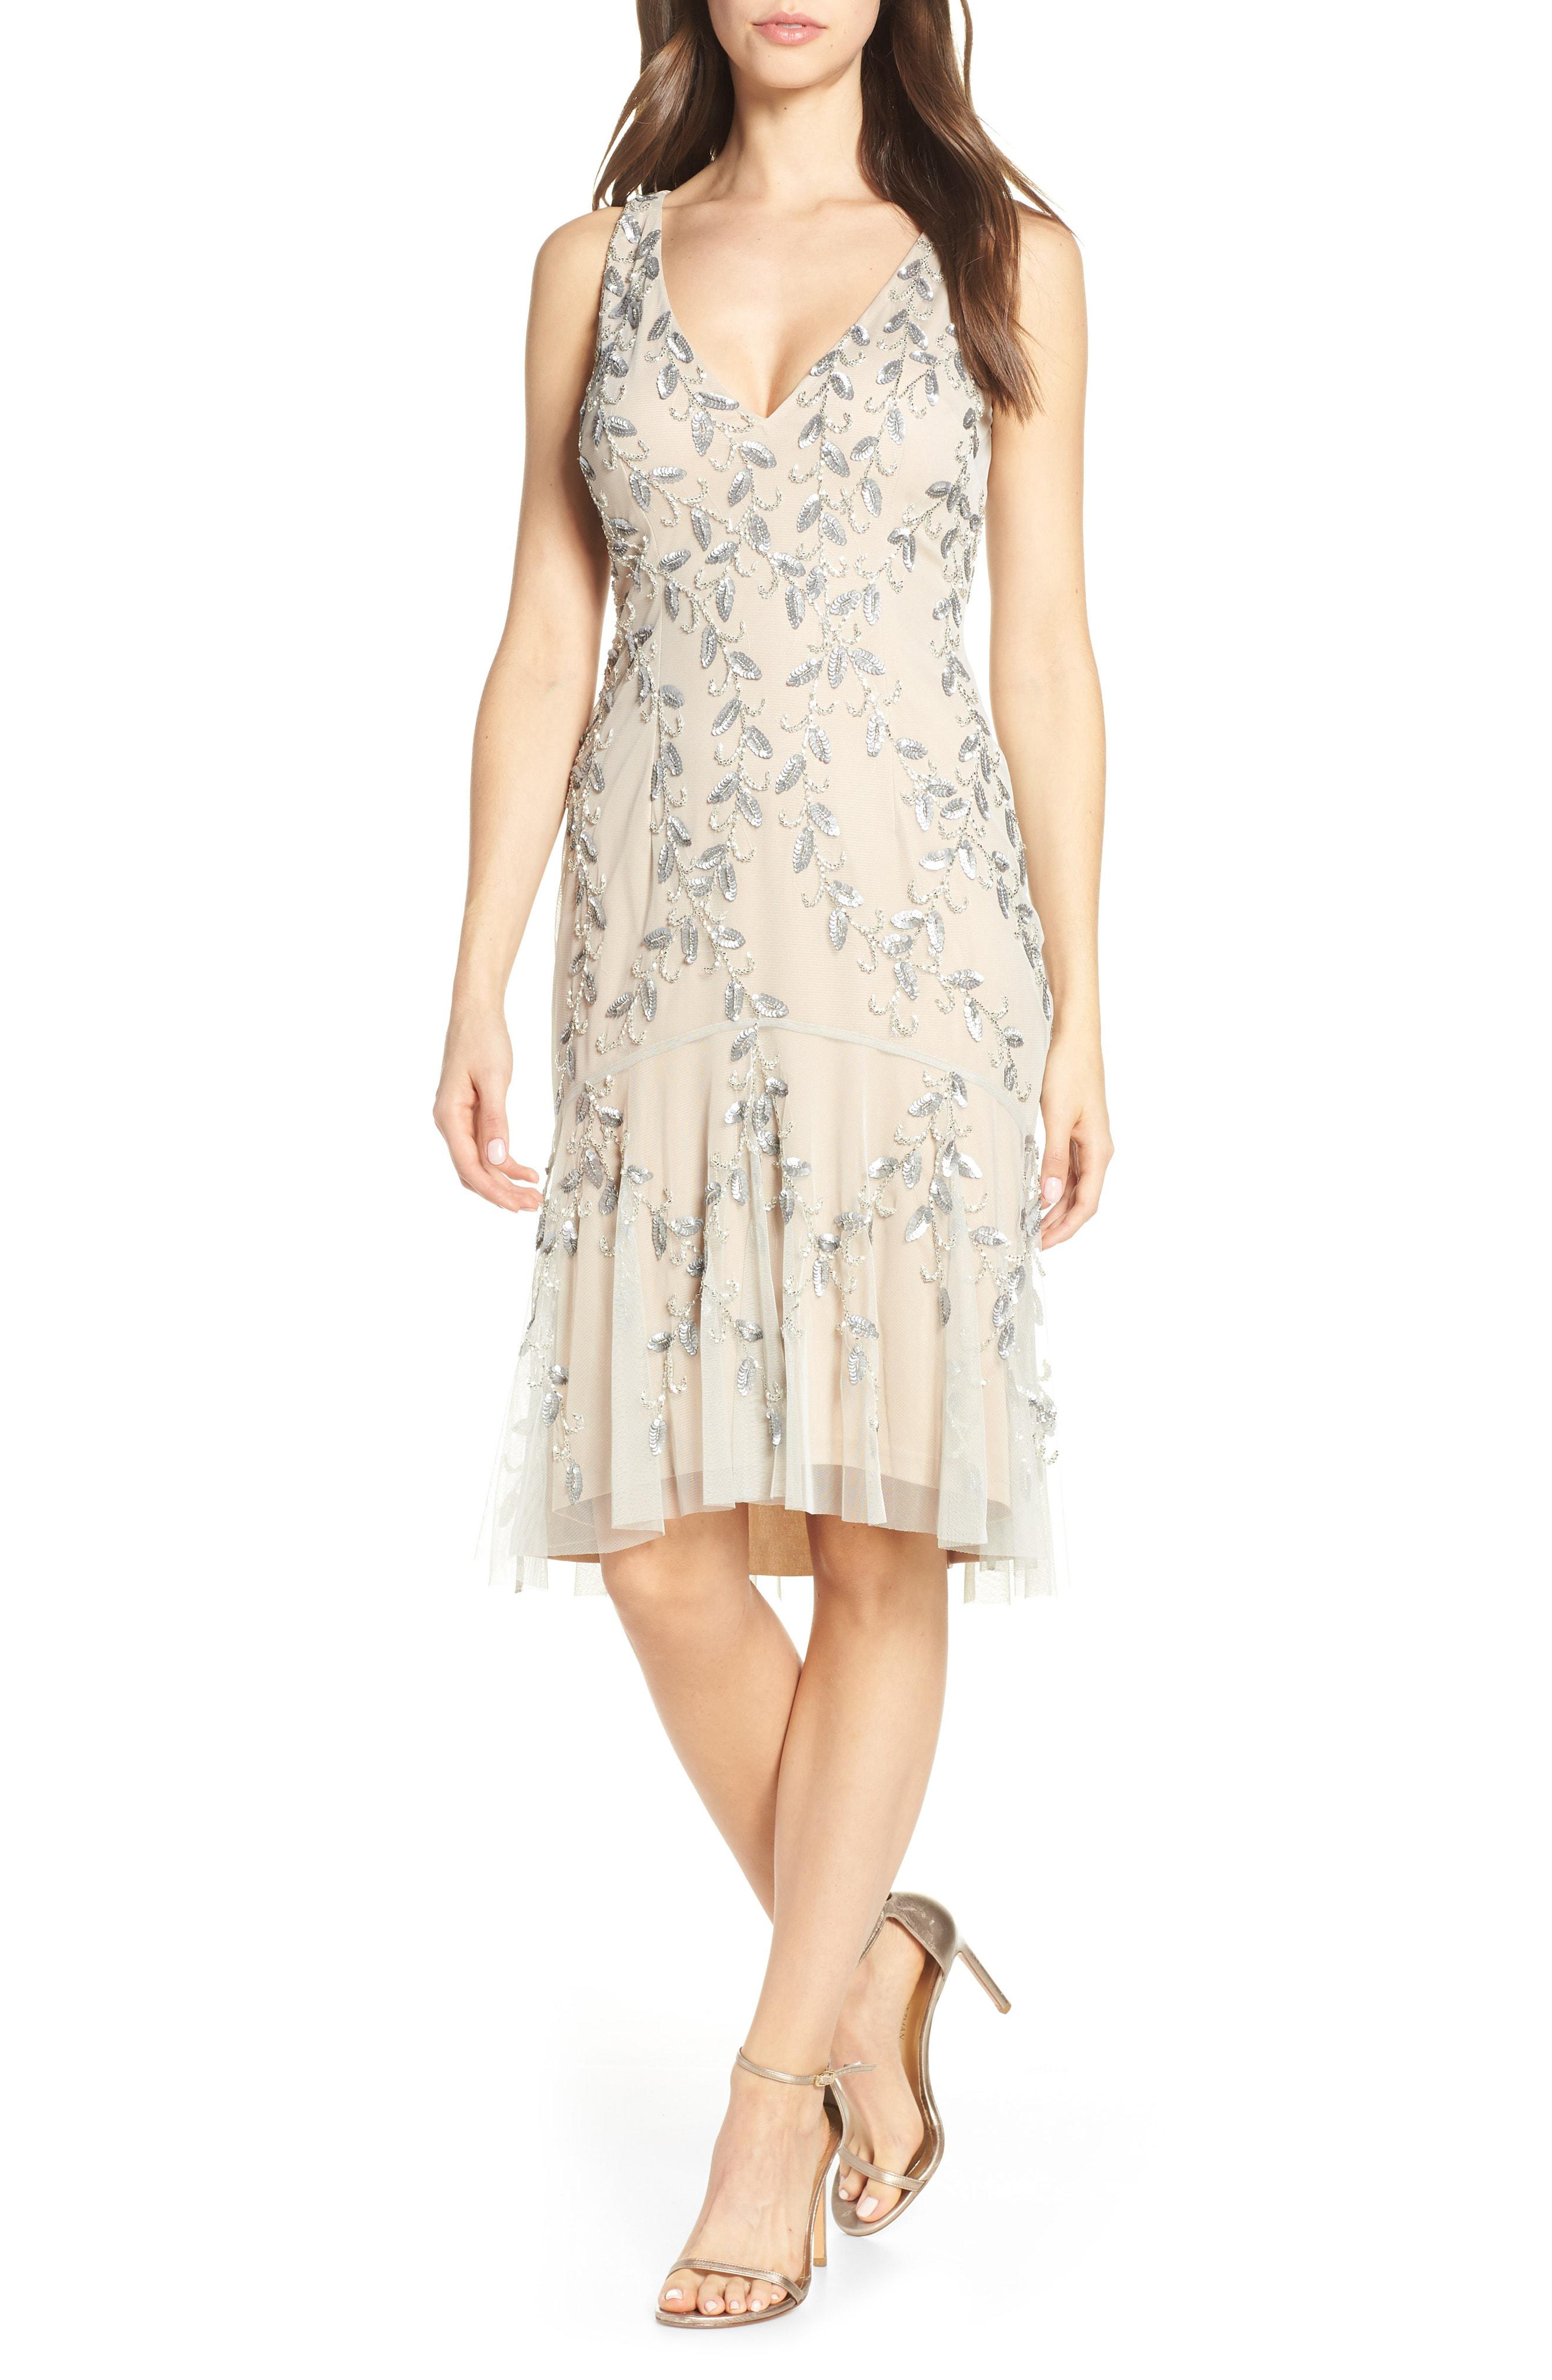 ef22d0640fc Adrianna Papell. Women s Beaded Cocktail Dress